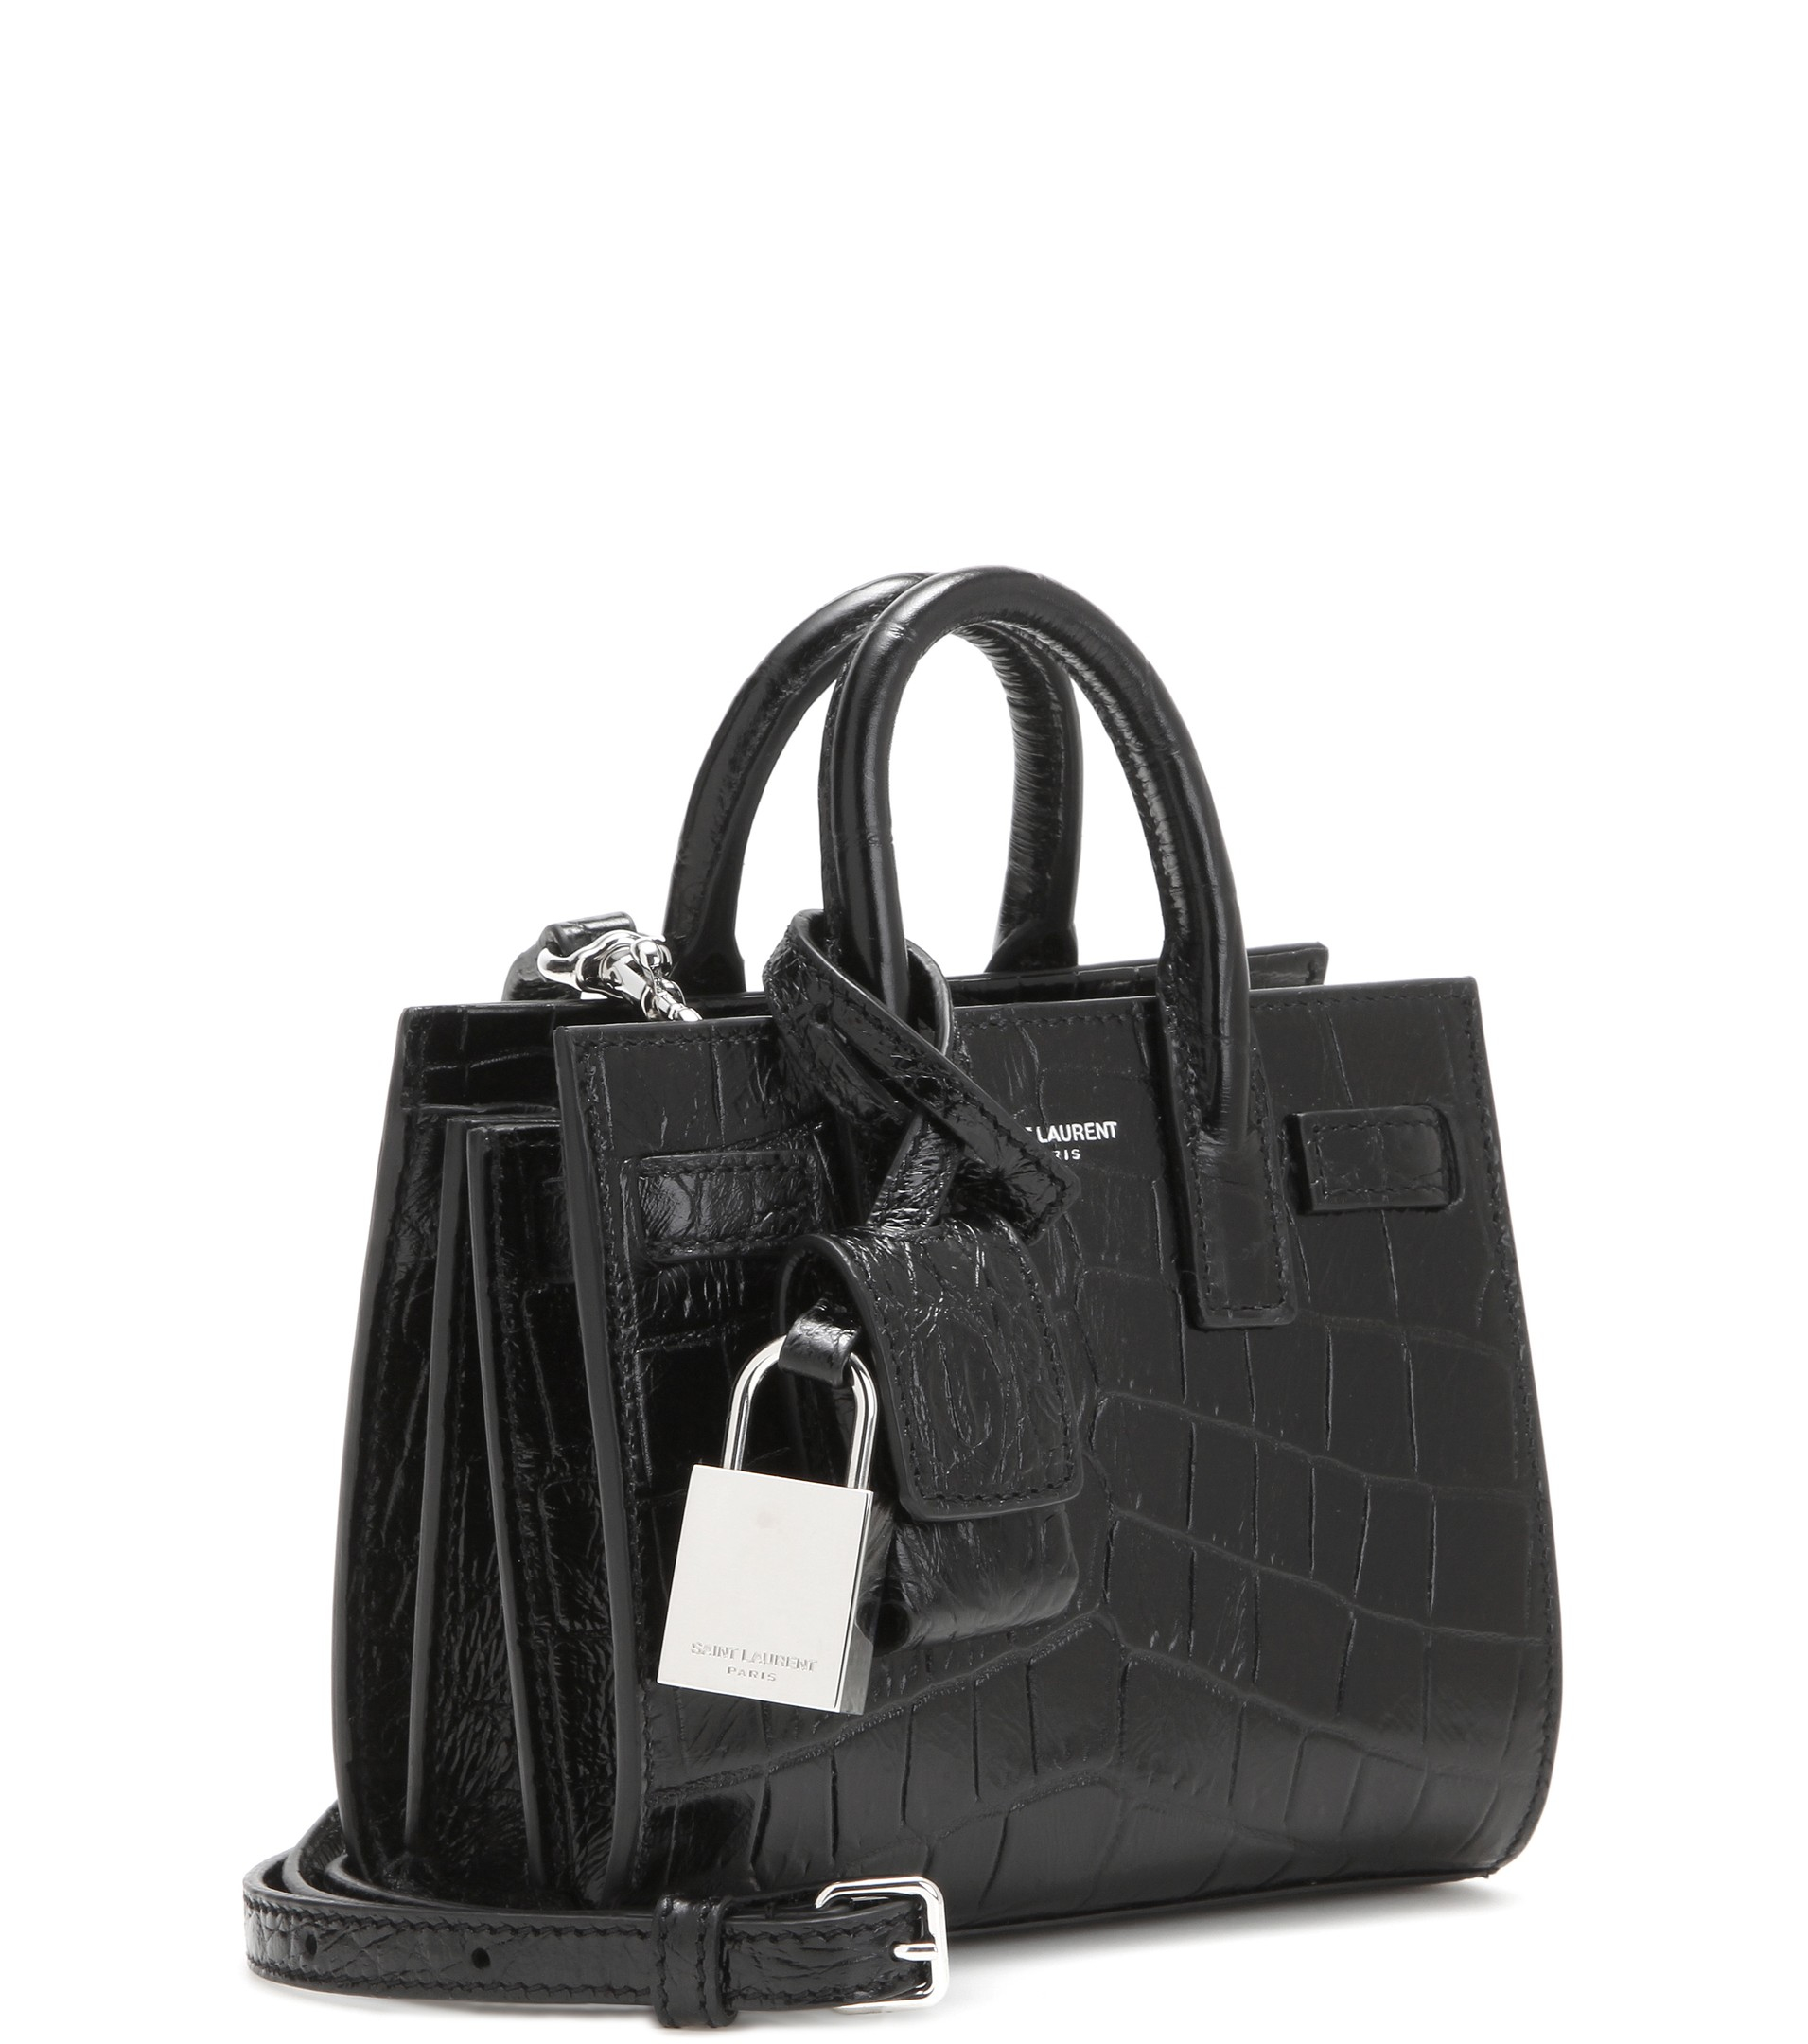 lyst saint laurent classic toy sac de jour shoulder bag in black. Black Bedroom Furniture Sets. Home Design Ideas